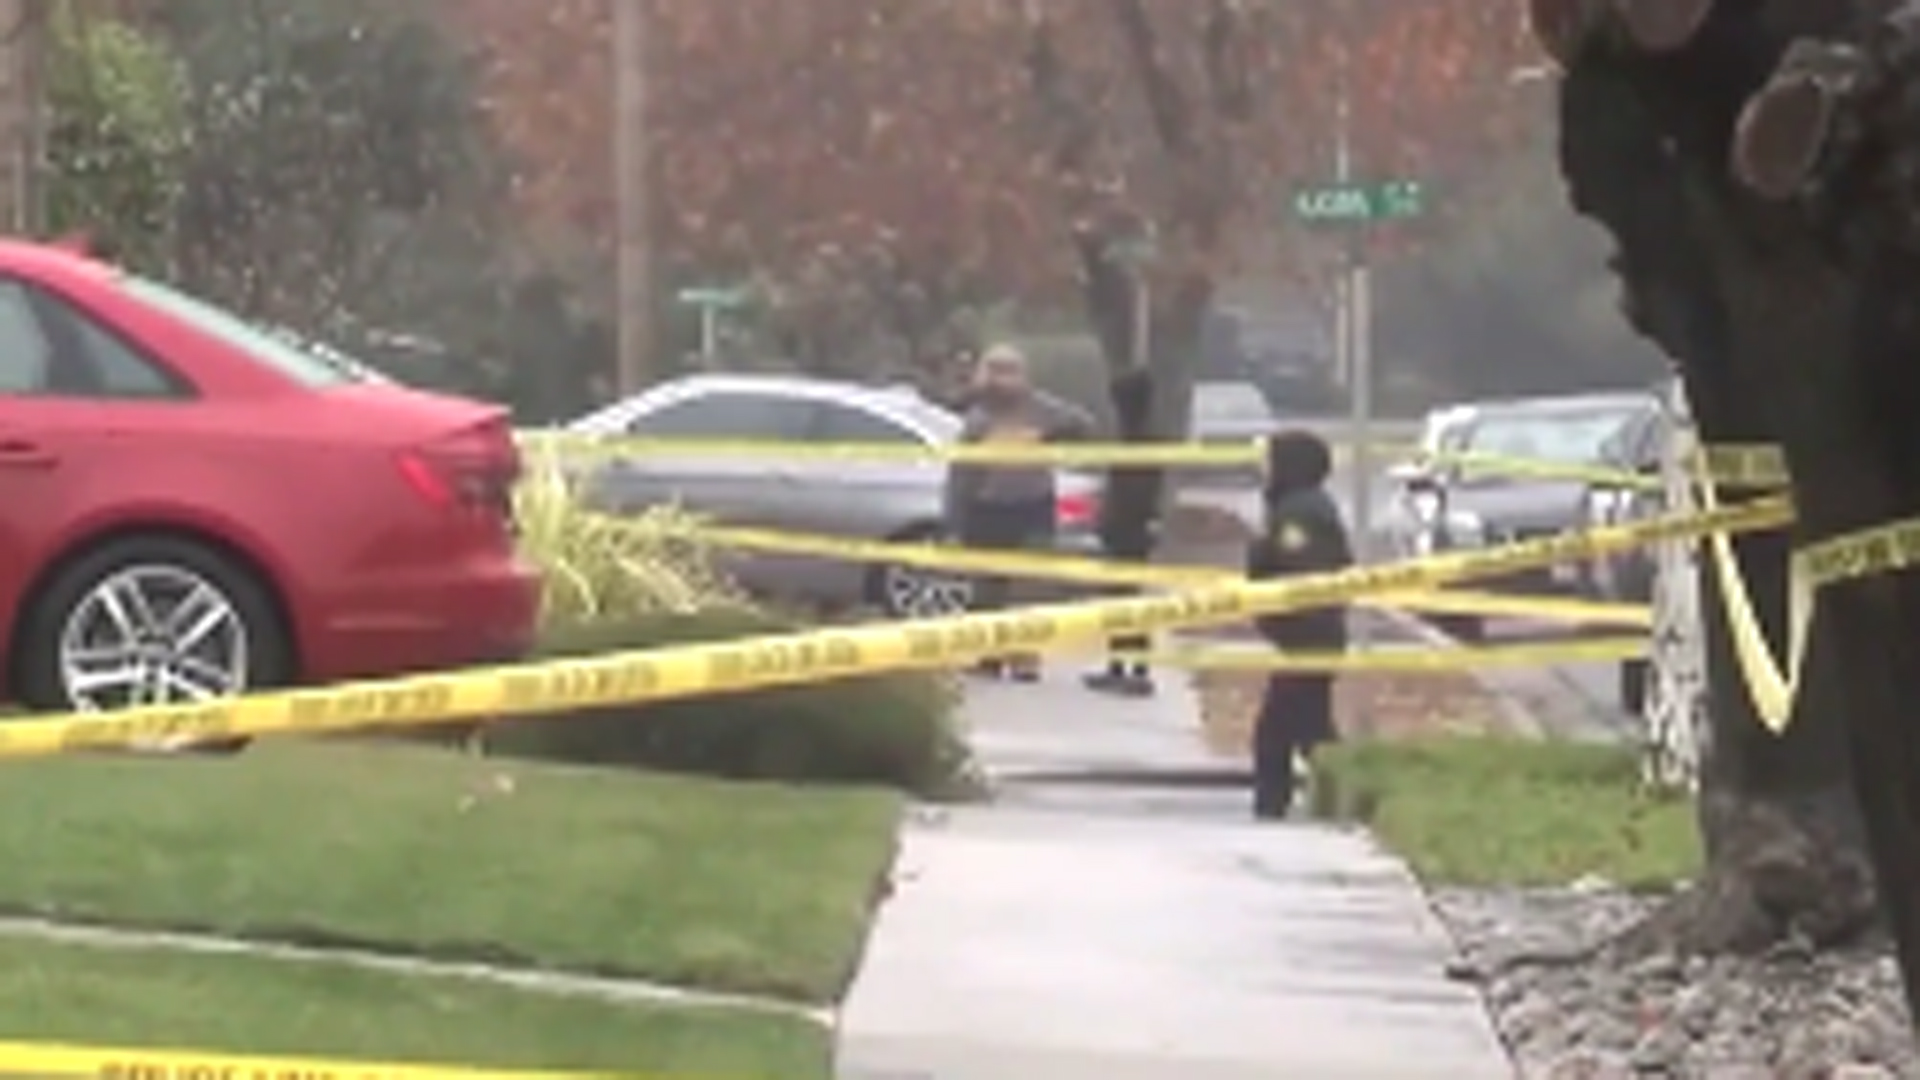 Police investigate a fatal officer-involved shooting in Concord on Dec. 1, 2019. (Credit: KPIX)